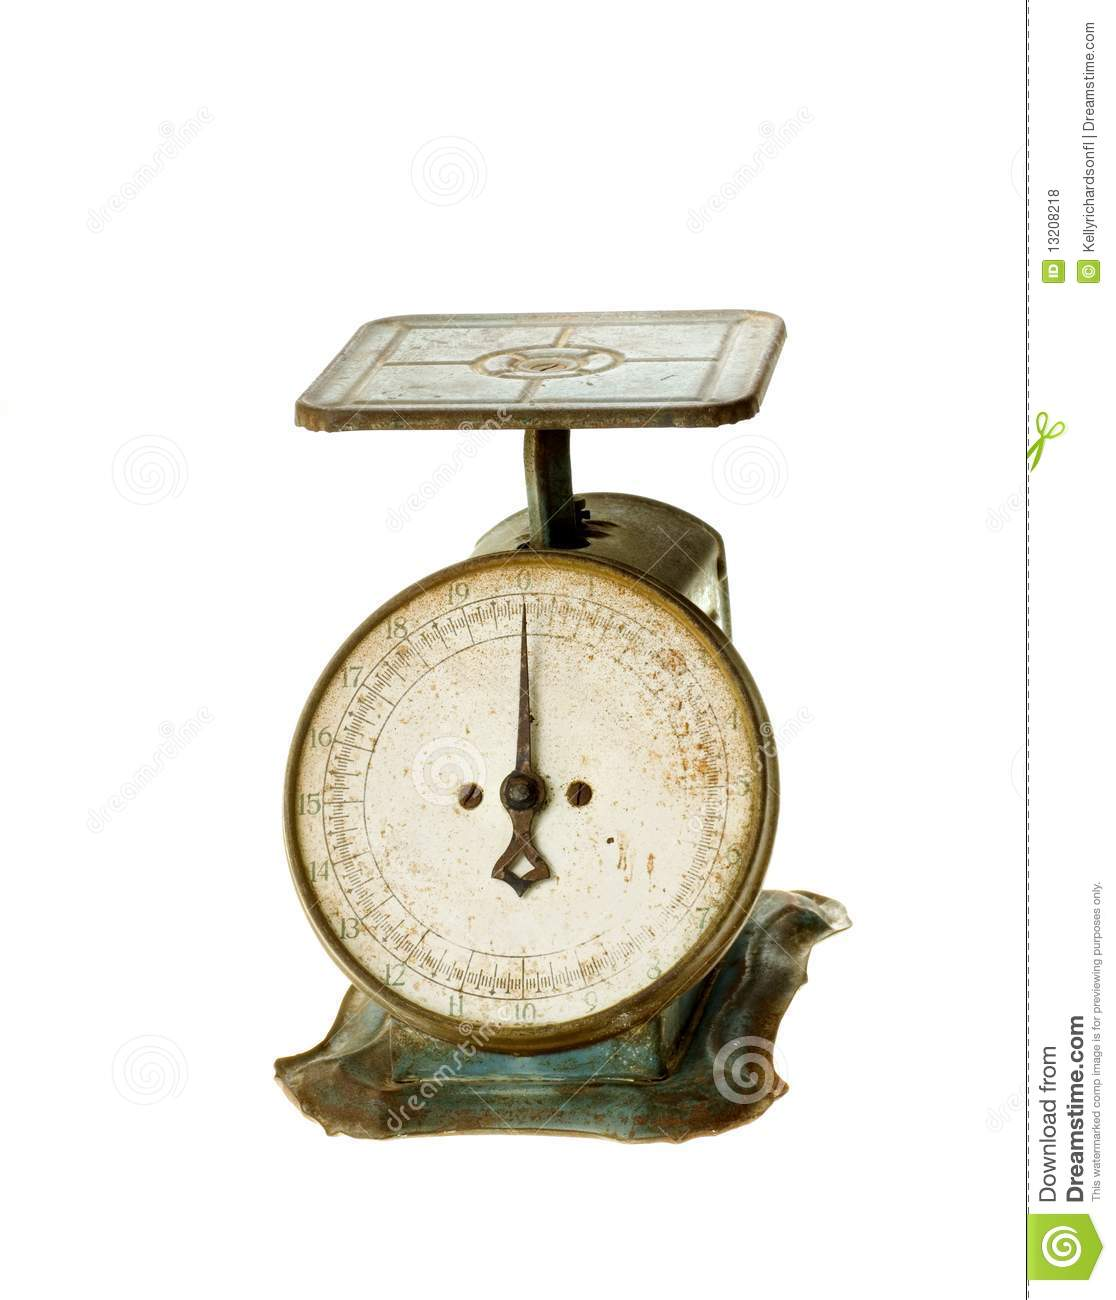 Antique Kitchen Scale: Antique Kitchen Household Scale Royalty Free Stock Photos